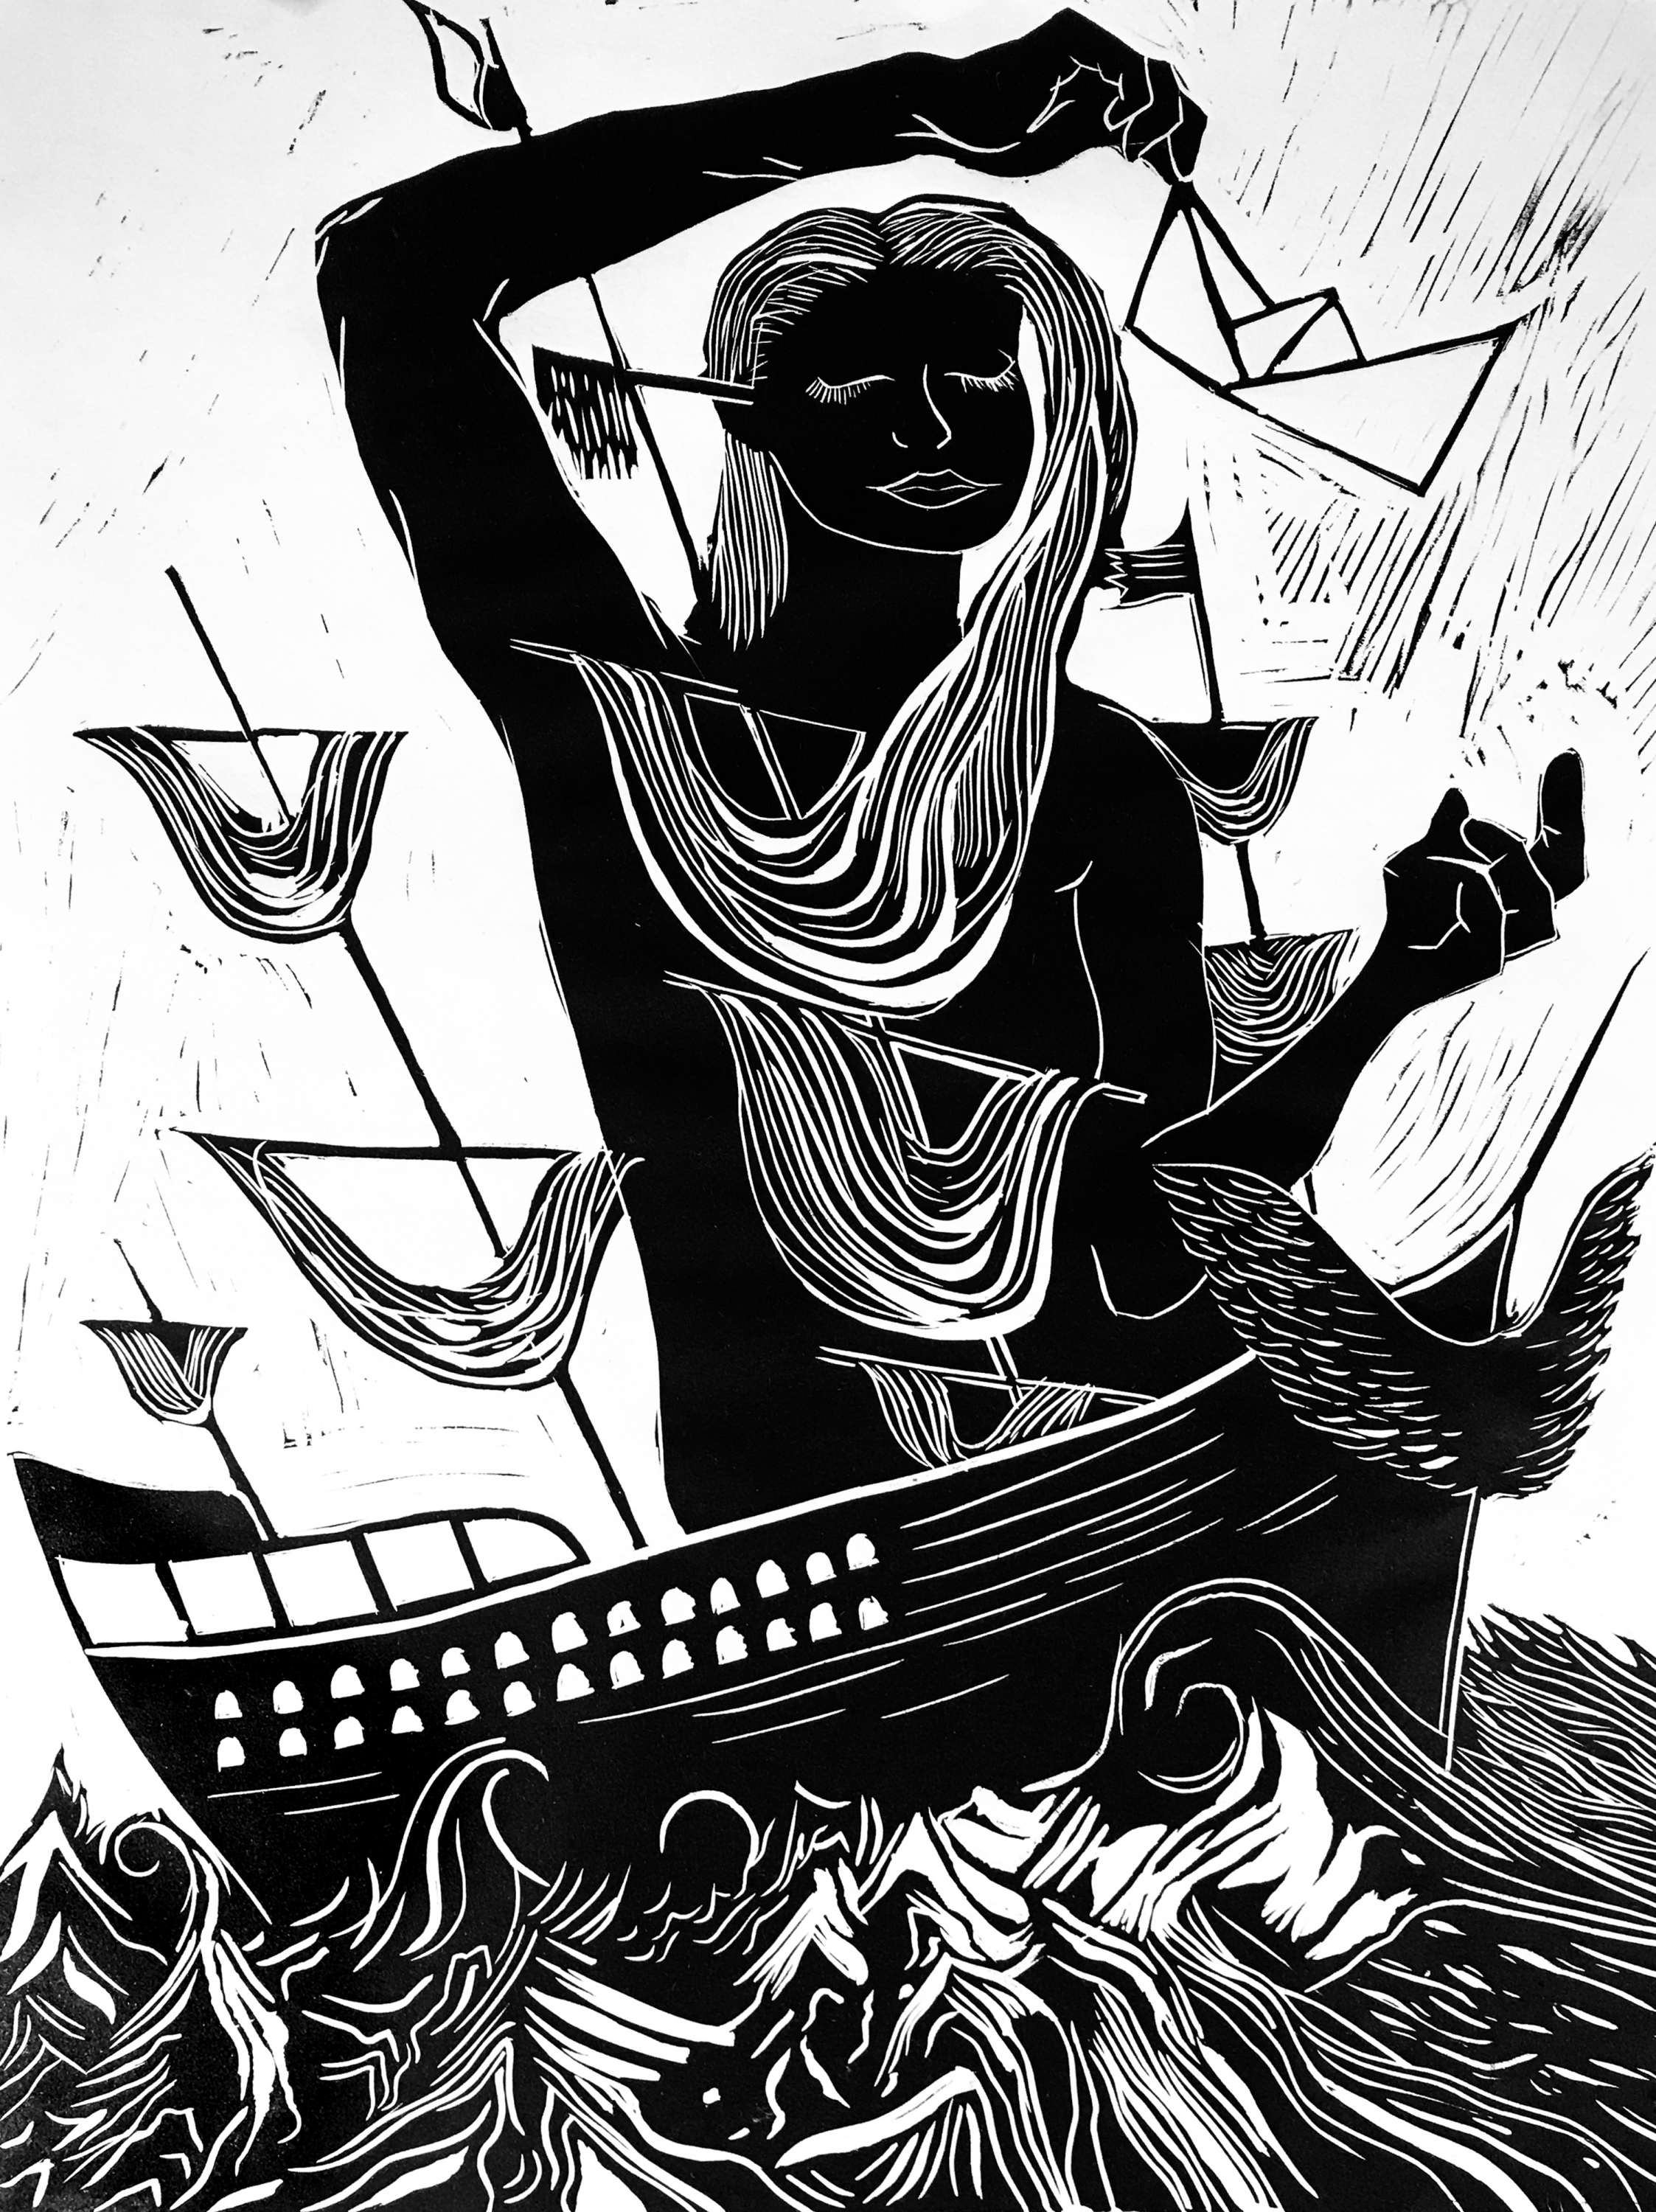 This is a linocut print of a woman on a boat.